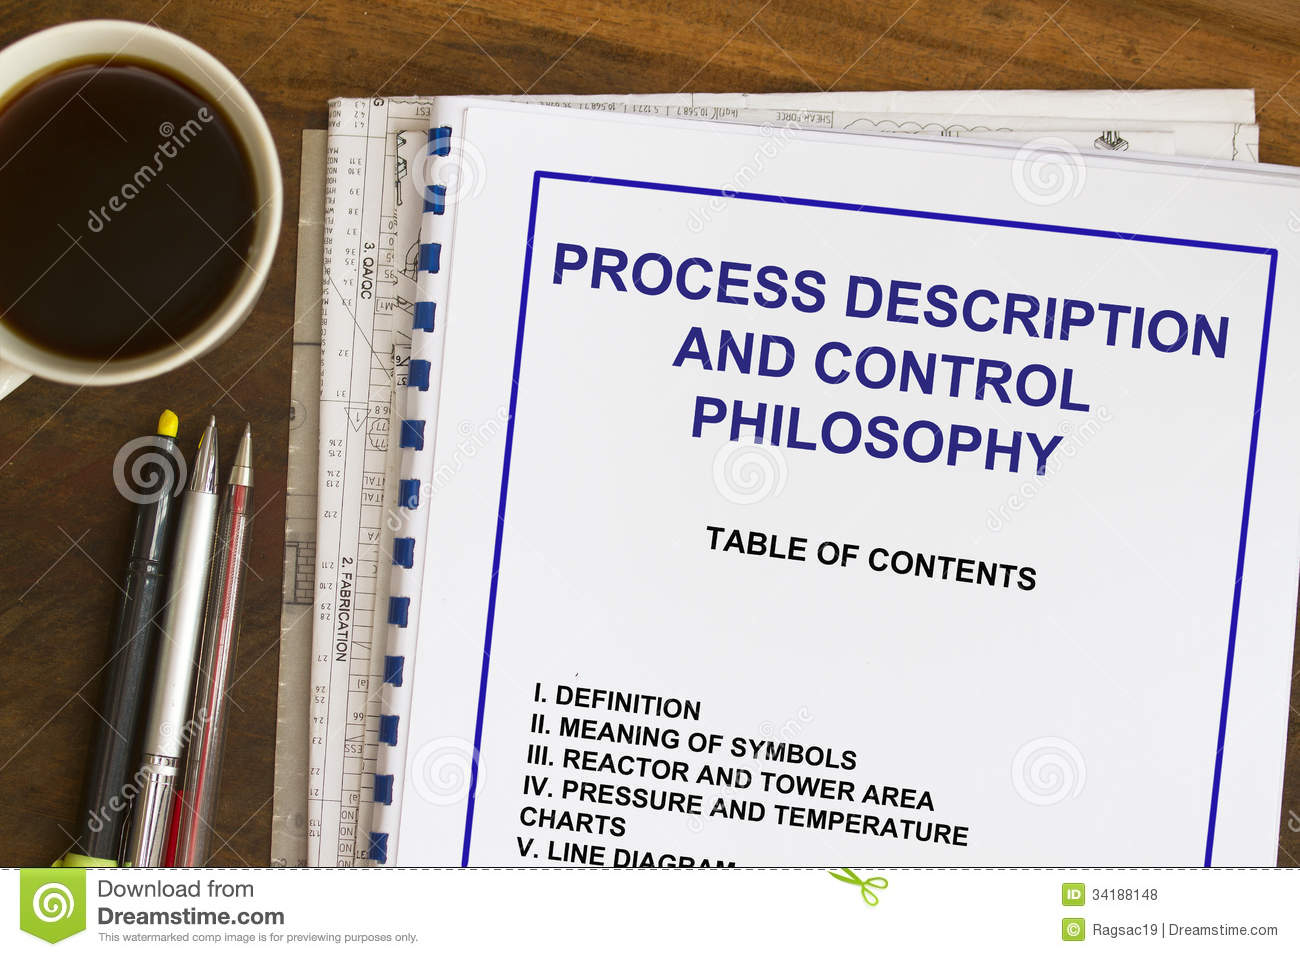 PROCESS CONTROL PHILOSOPHY PDF DOWNLOAD